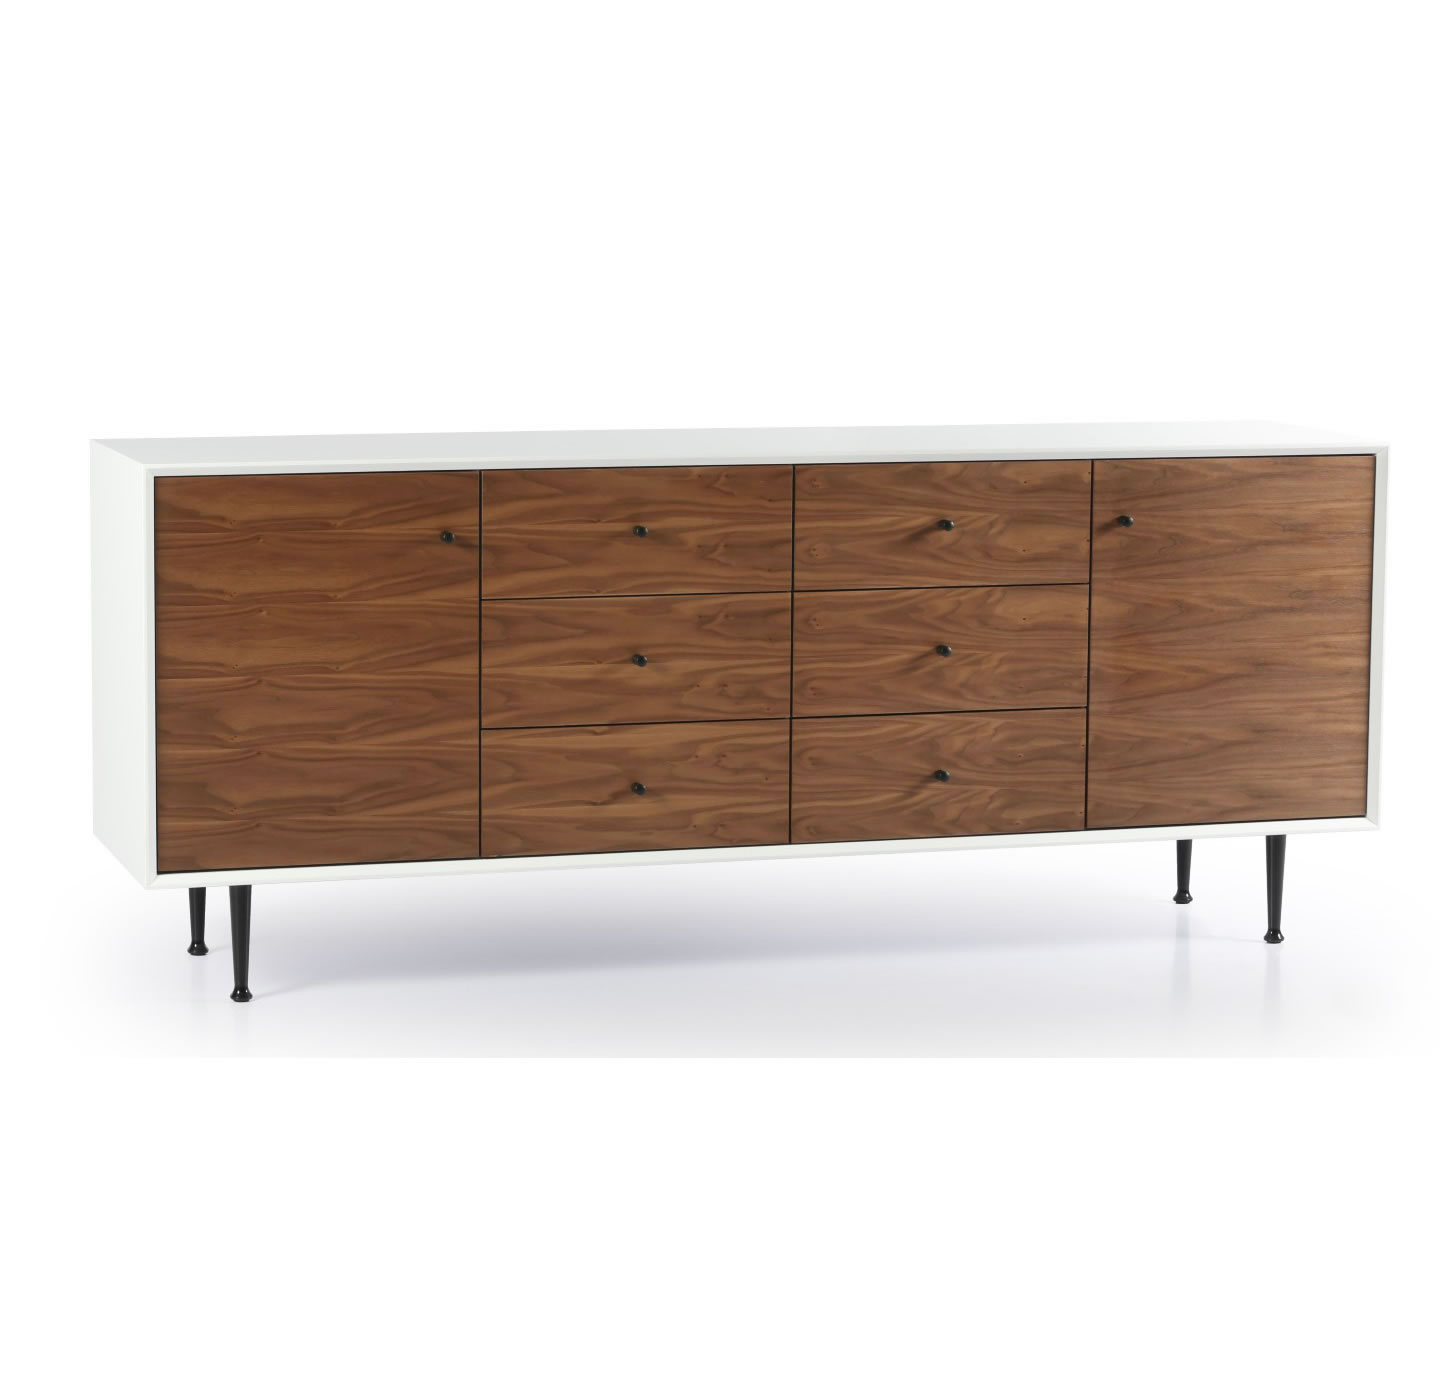 Sima buffet credenza sideboard mikaza meubles for Buffet meuble montreal